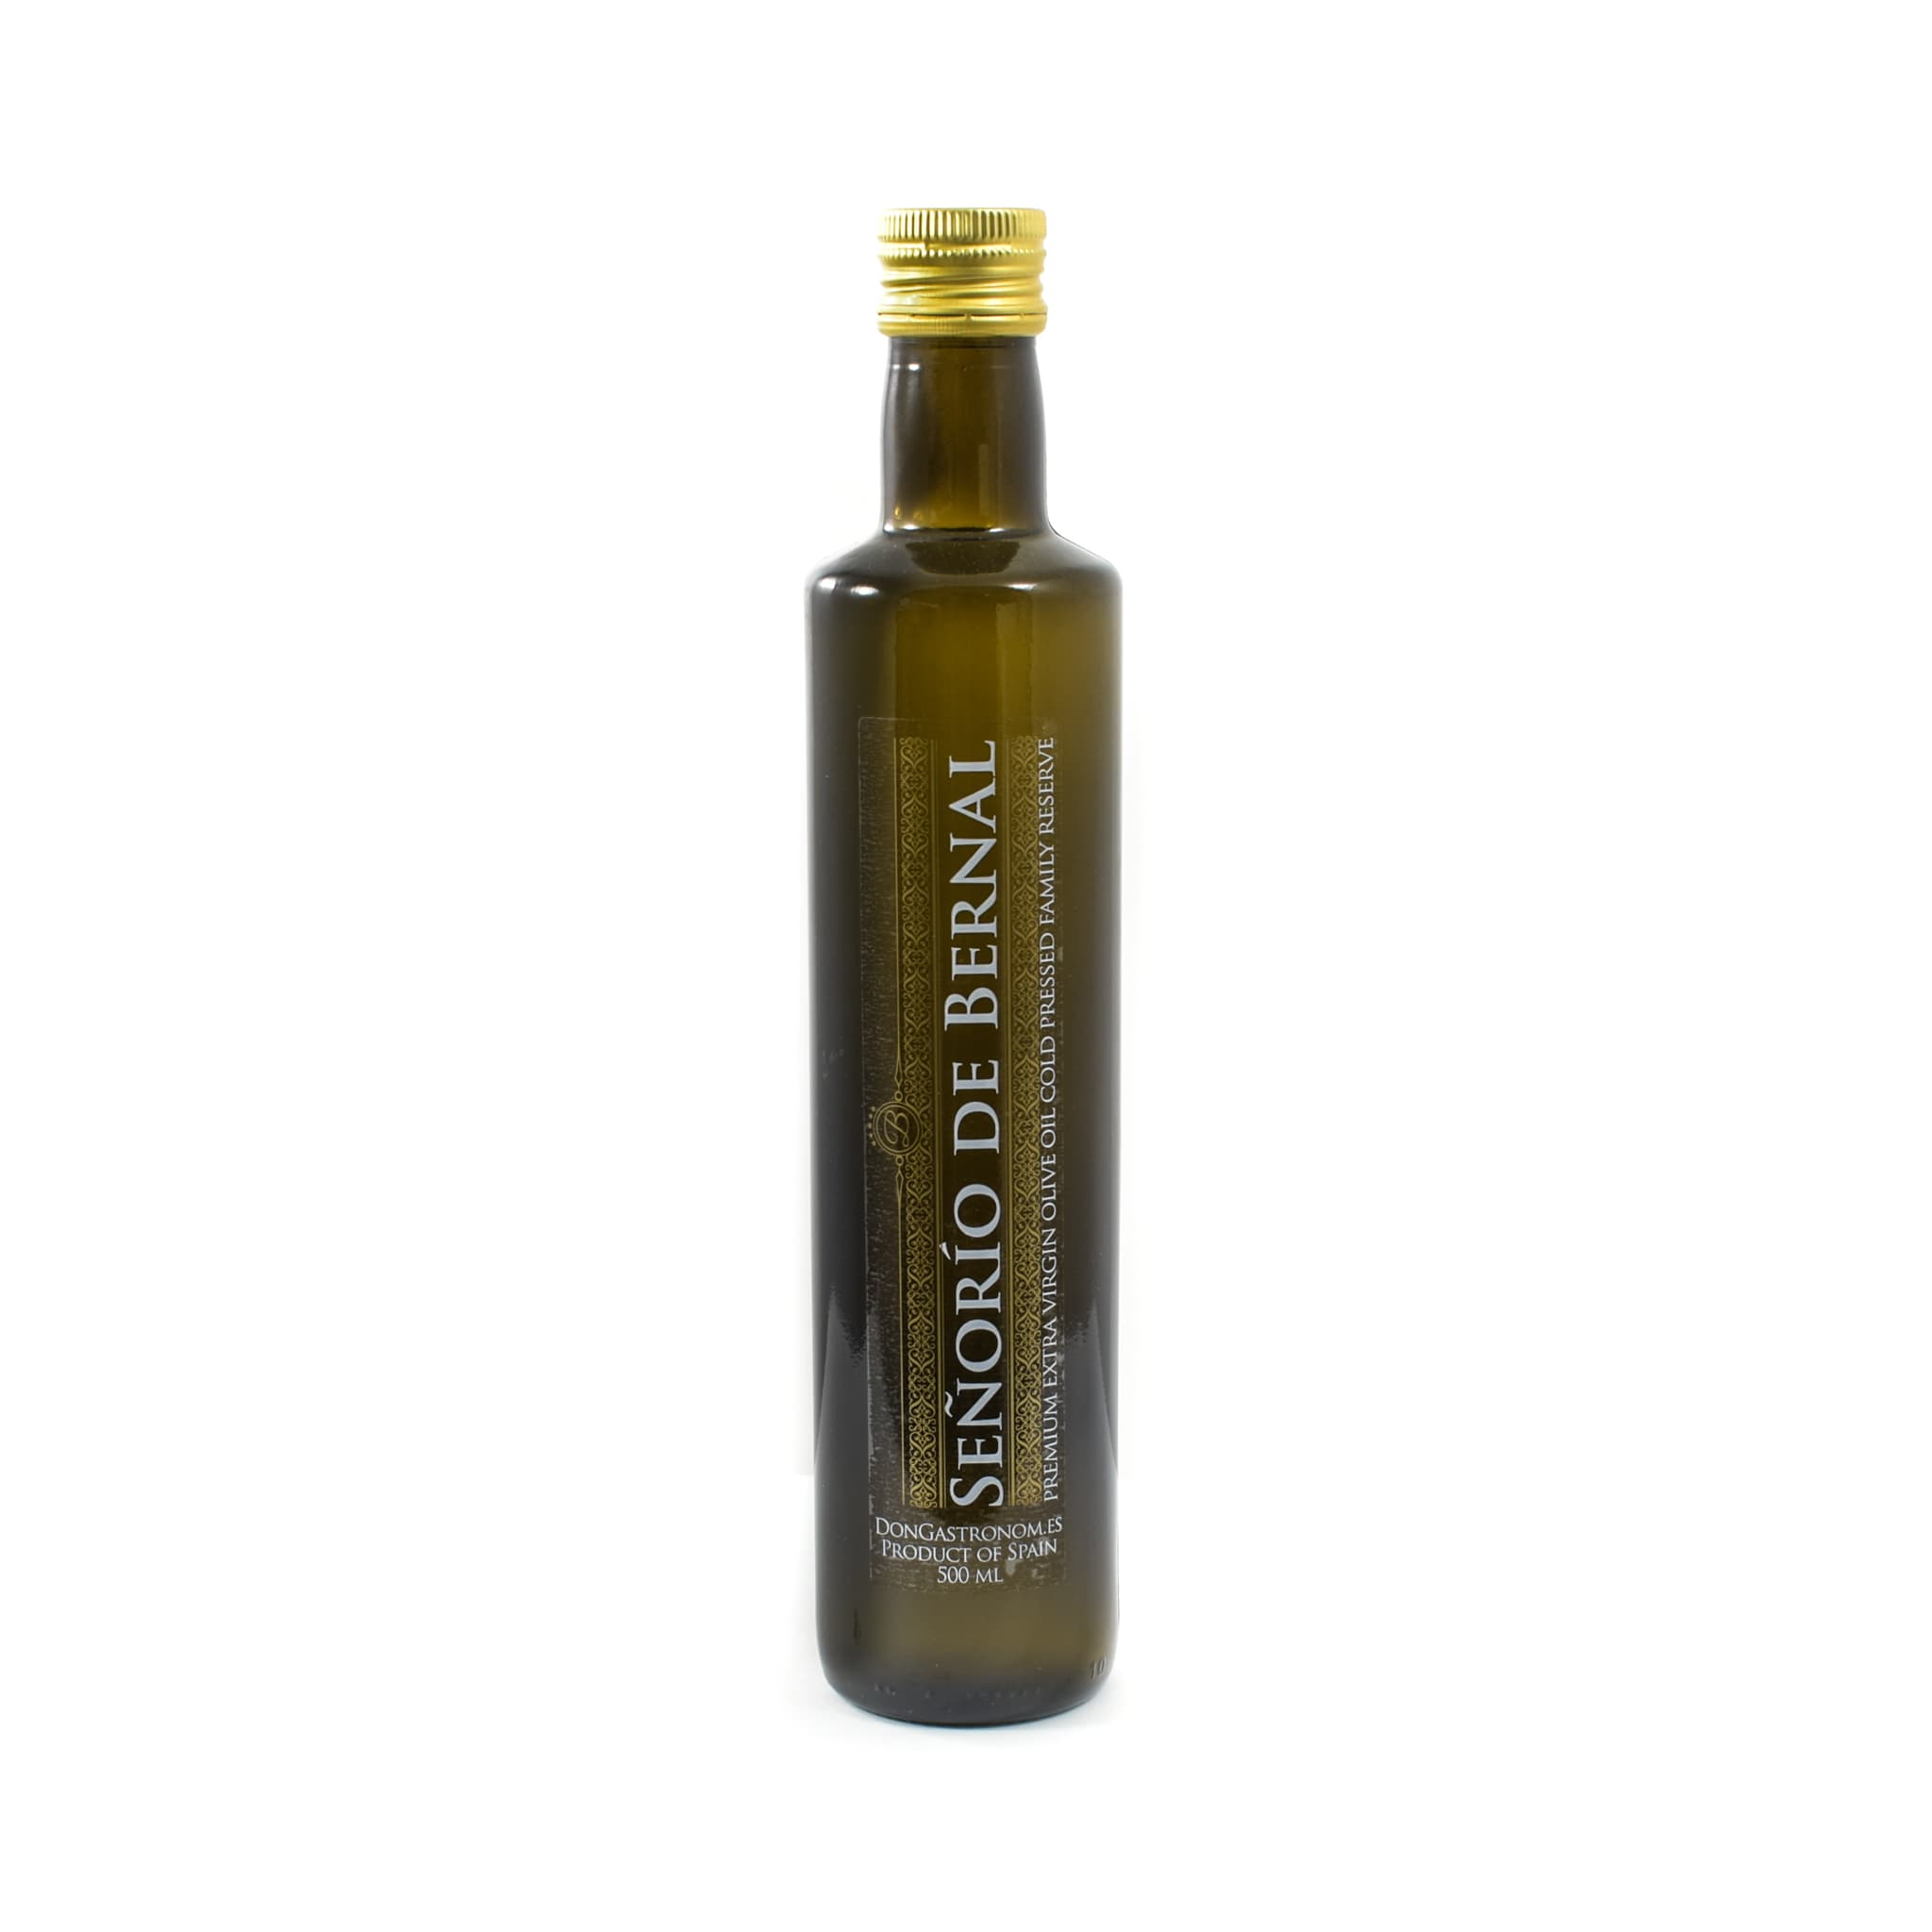 Cold Pressed Arbequina & Picual Extra Virgin Olive Oil